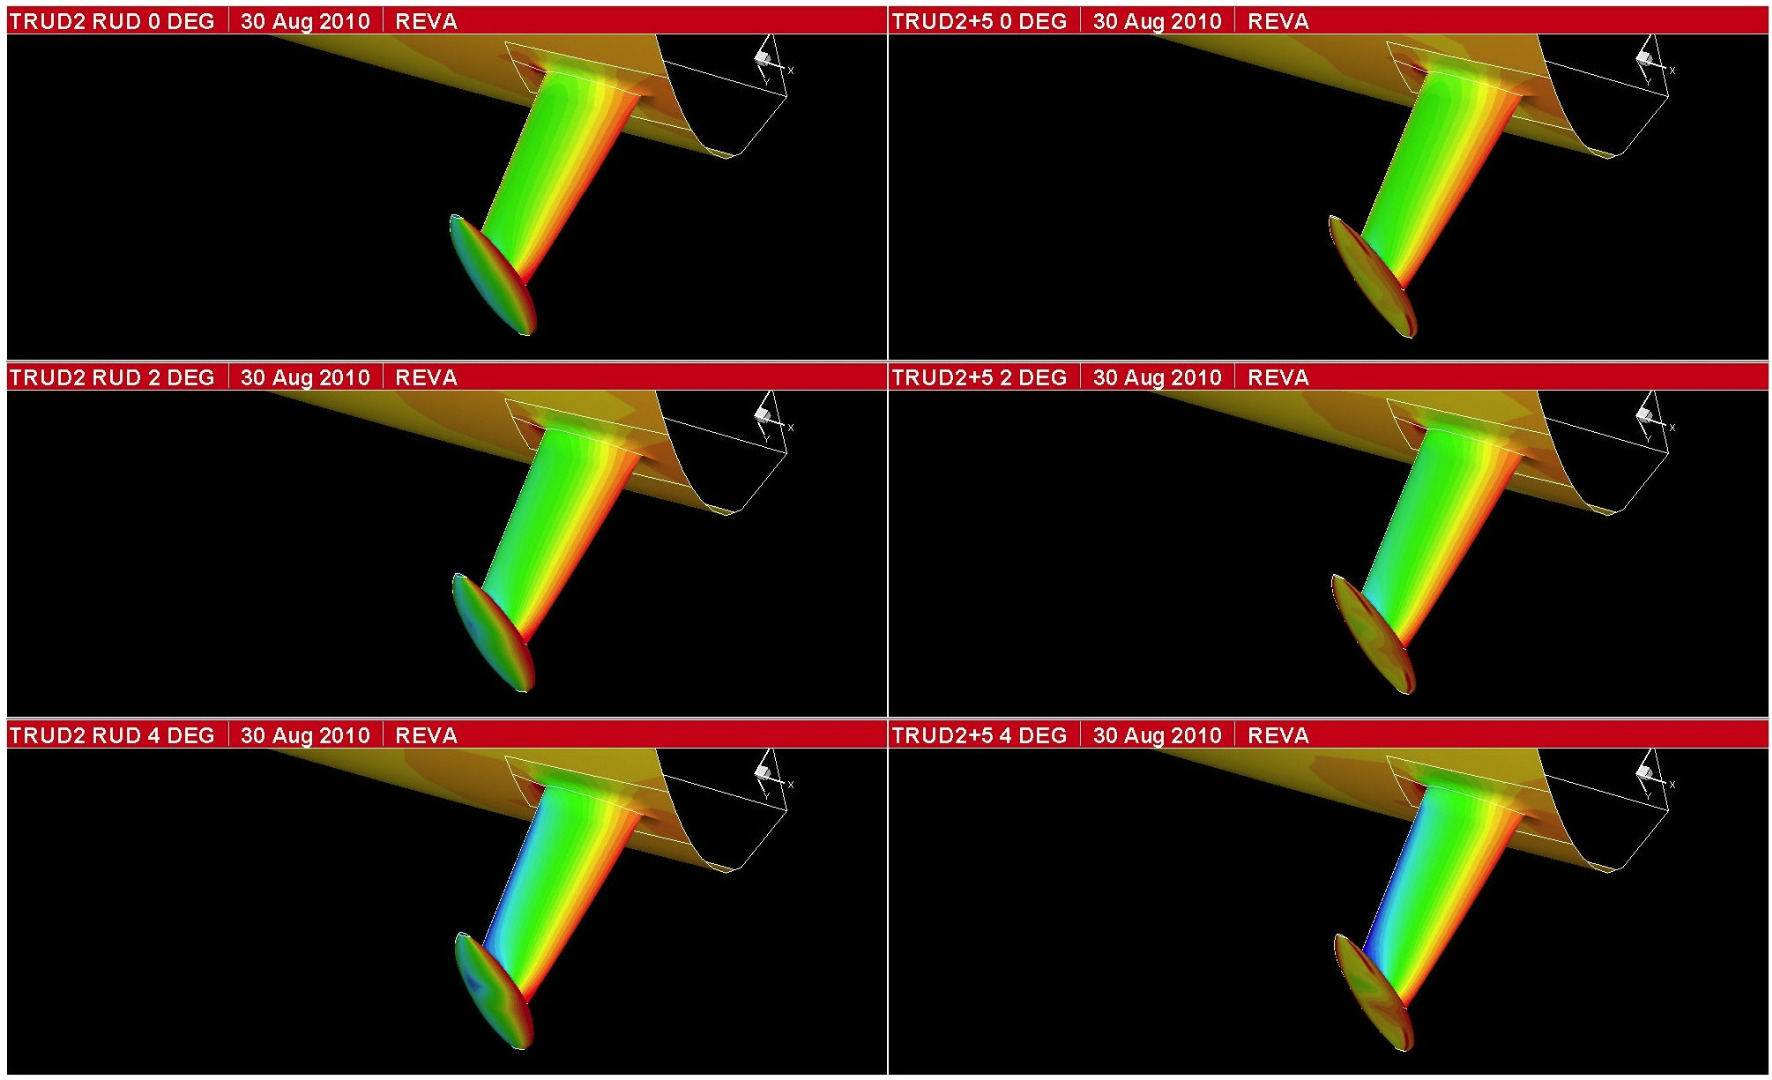 Although it remains banned by the IMOCA rule, during the design and development of their Open 60 yacht designs, naval architects Owen Clarke Design have investigated the inclusion of a T foil rudder concept both as a lifting device and for trim control.  Testing was carried out at 1/3rd model scale and using computational fluid dynamics, CFD.